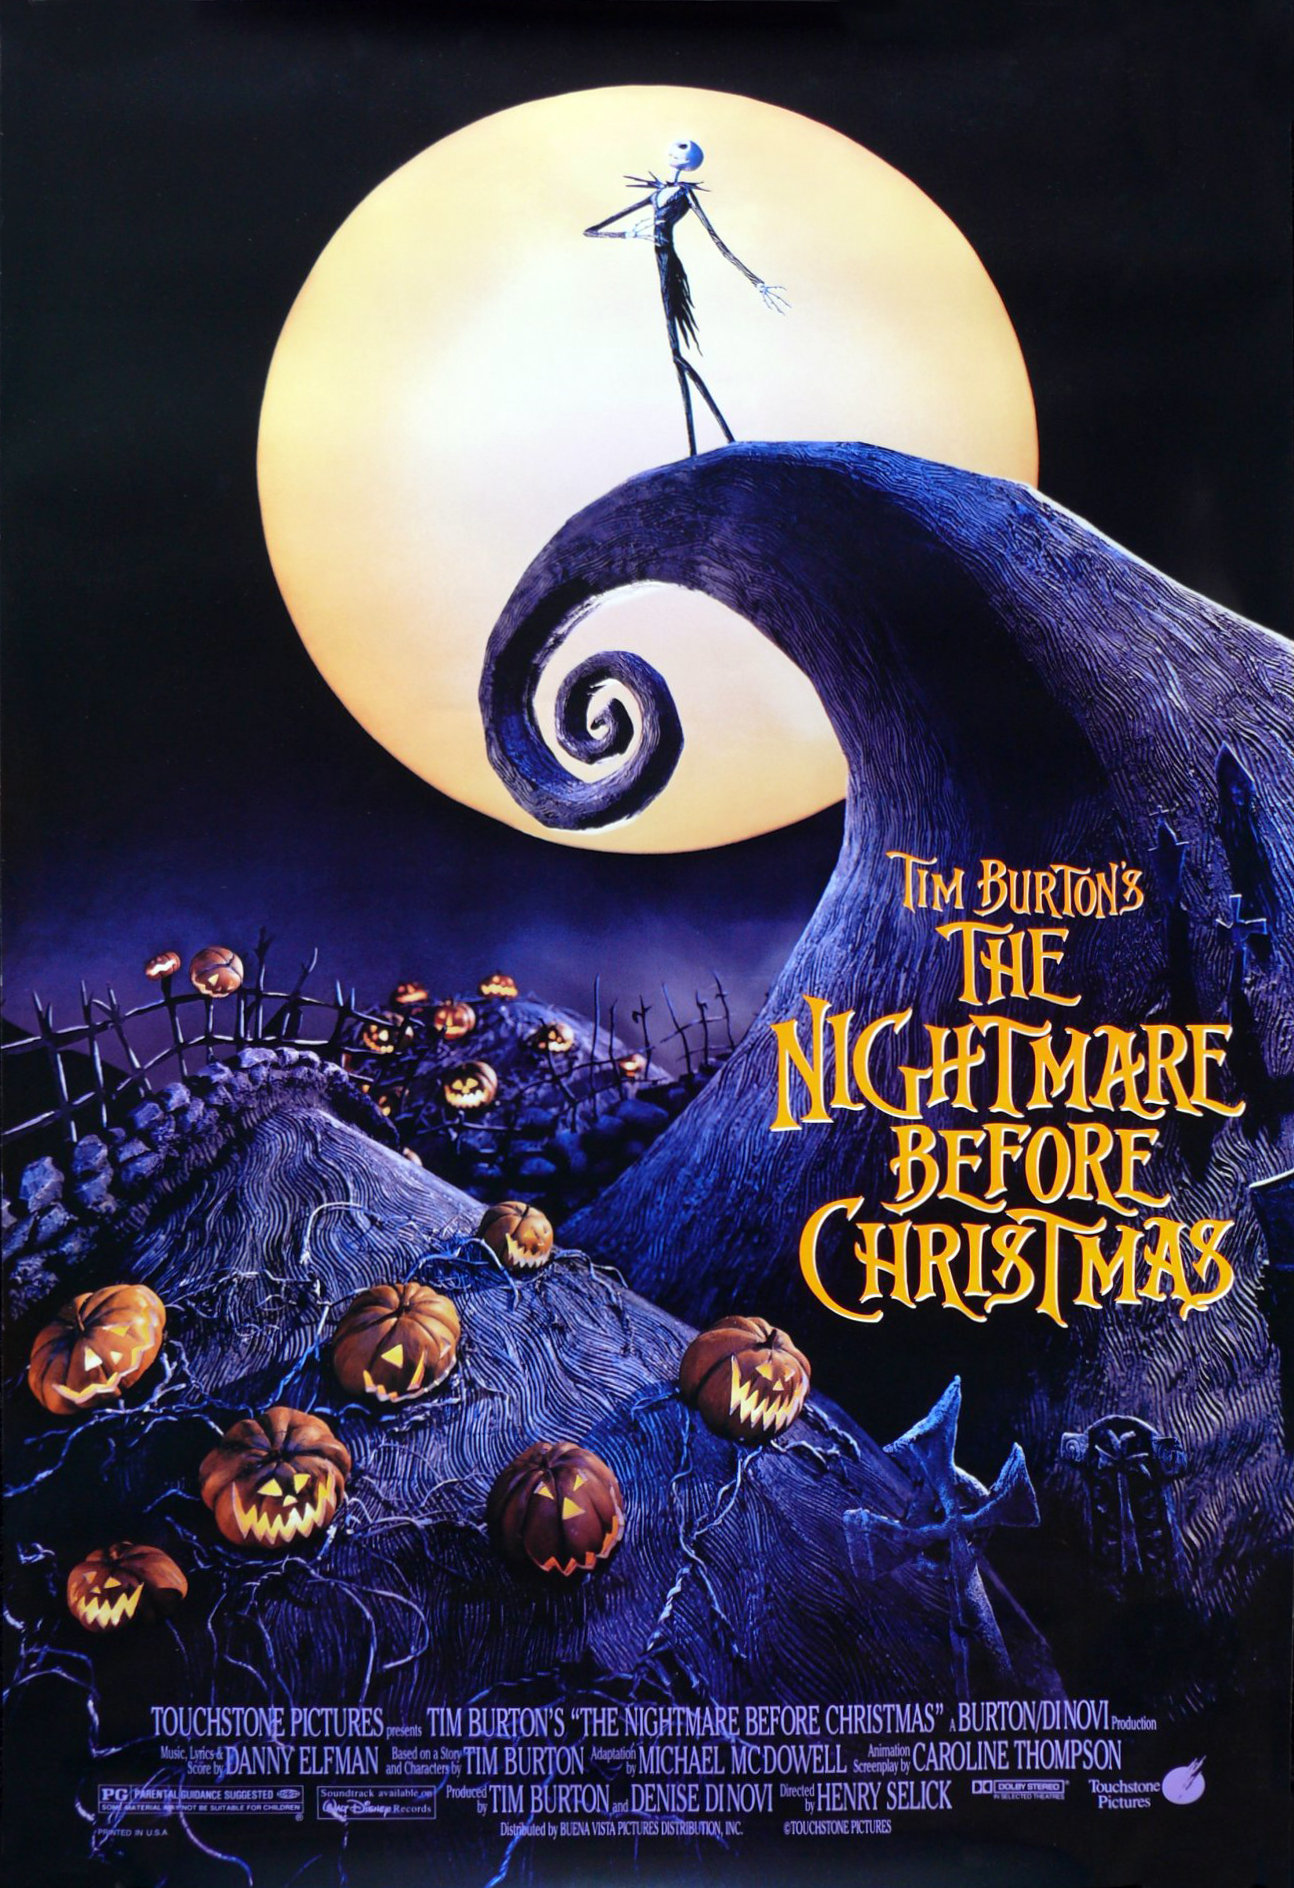 The Nightmare Before Christmas - Tim Burton Wiki